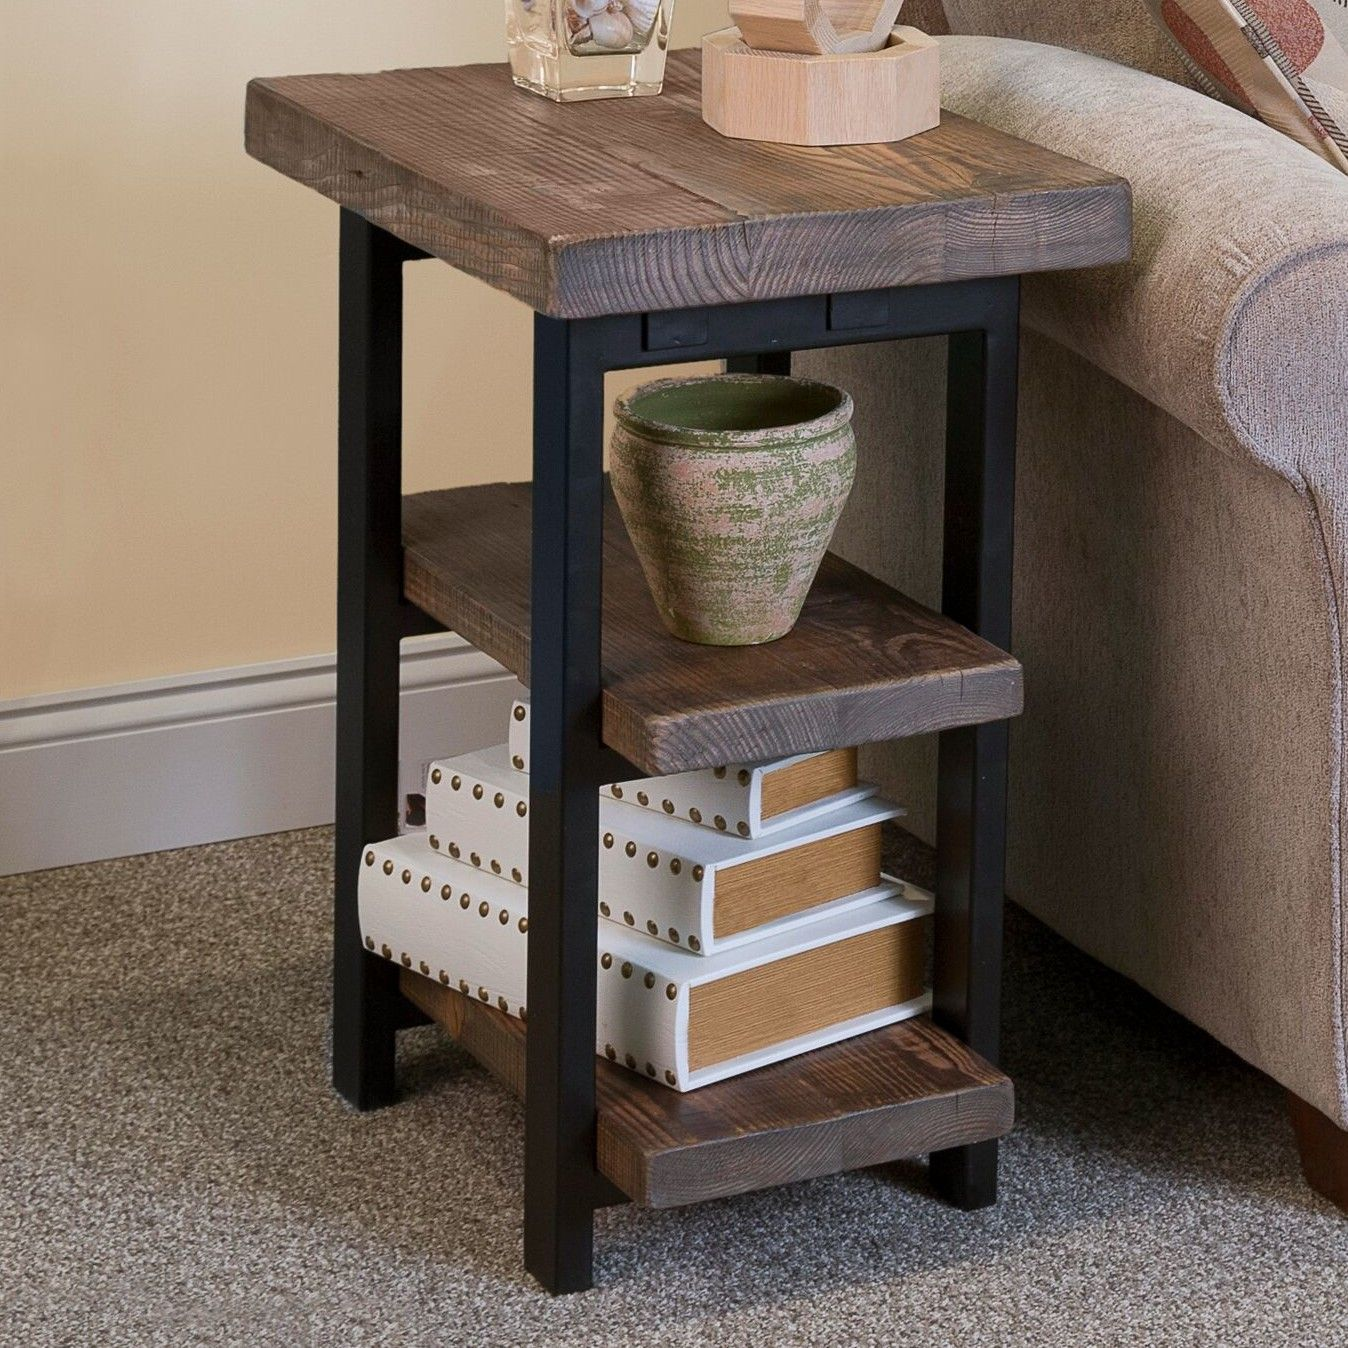 Solid Wood Tops With Metal Legs That Will Last For Years To Come Rustic Natural Finish Provides A Warm Yet Elegant Home Feeling End Table Two